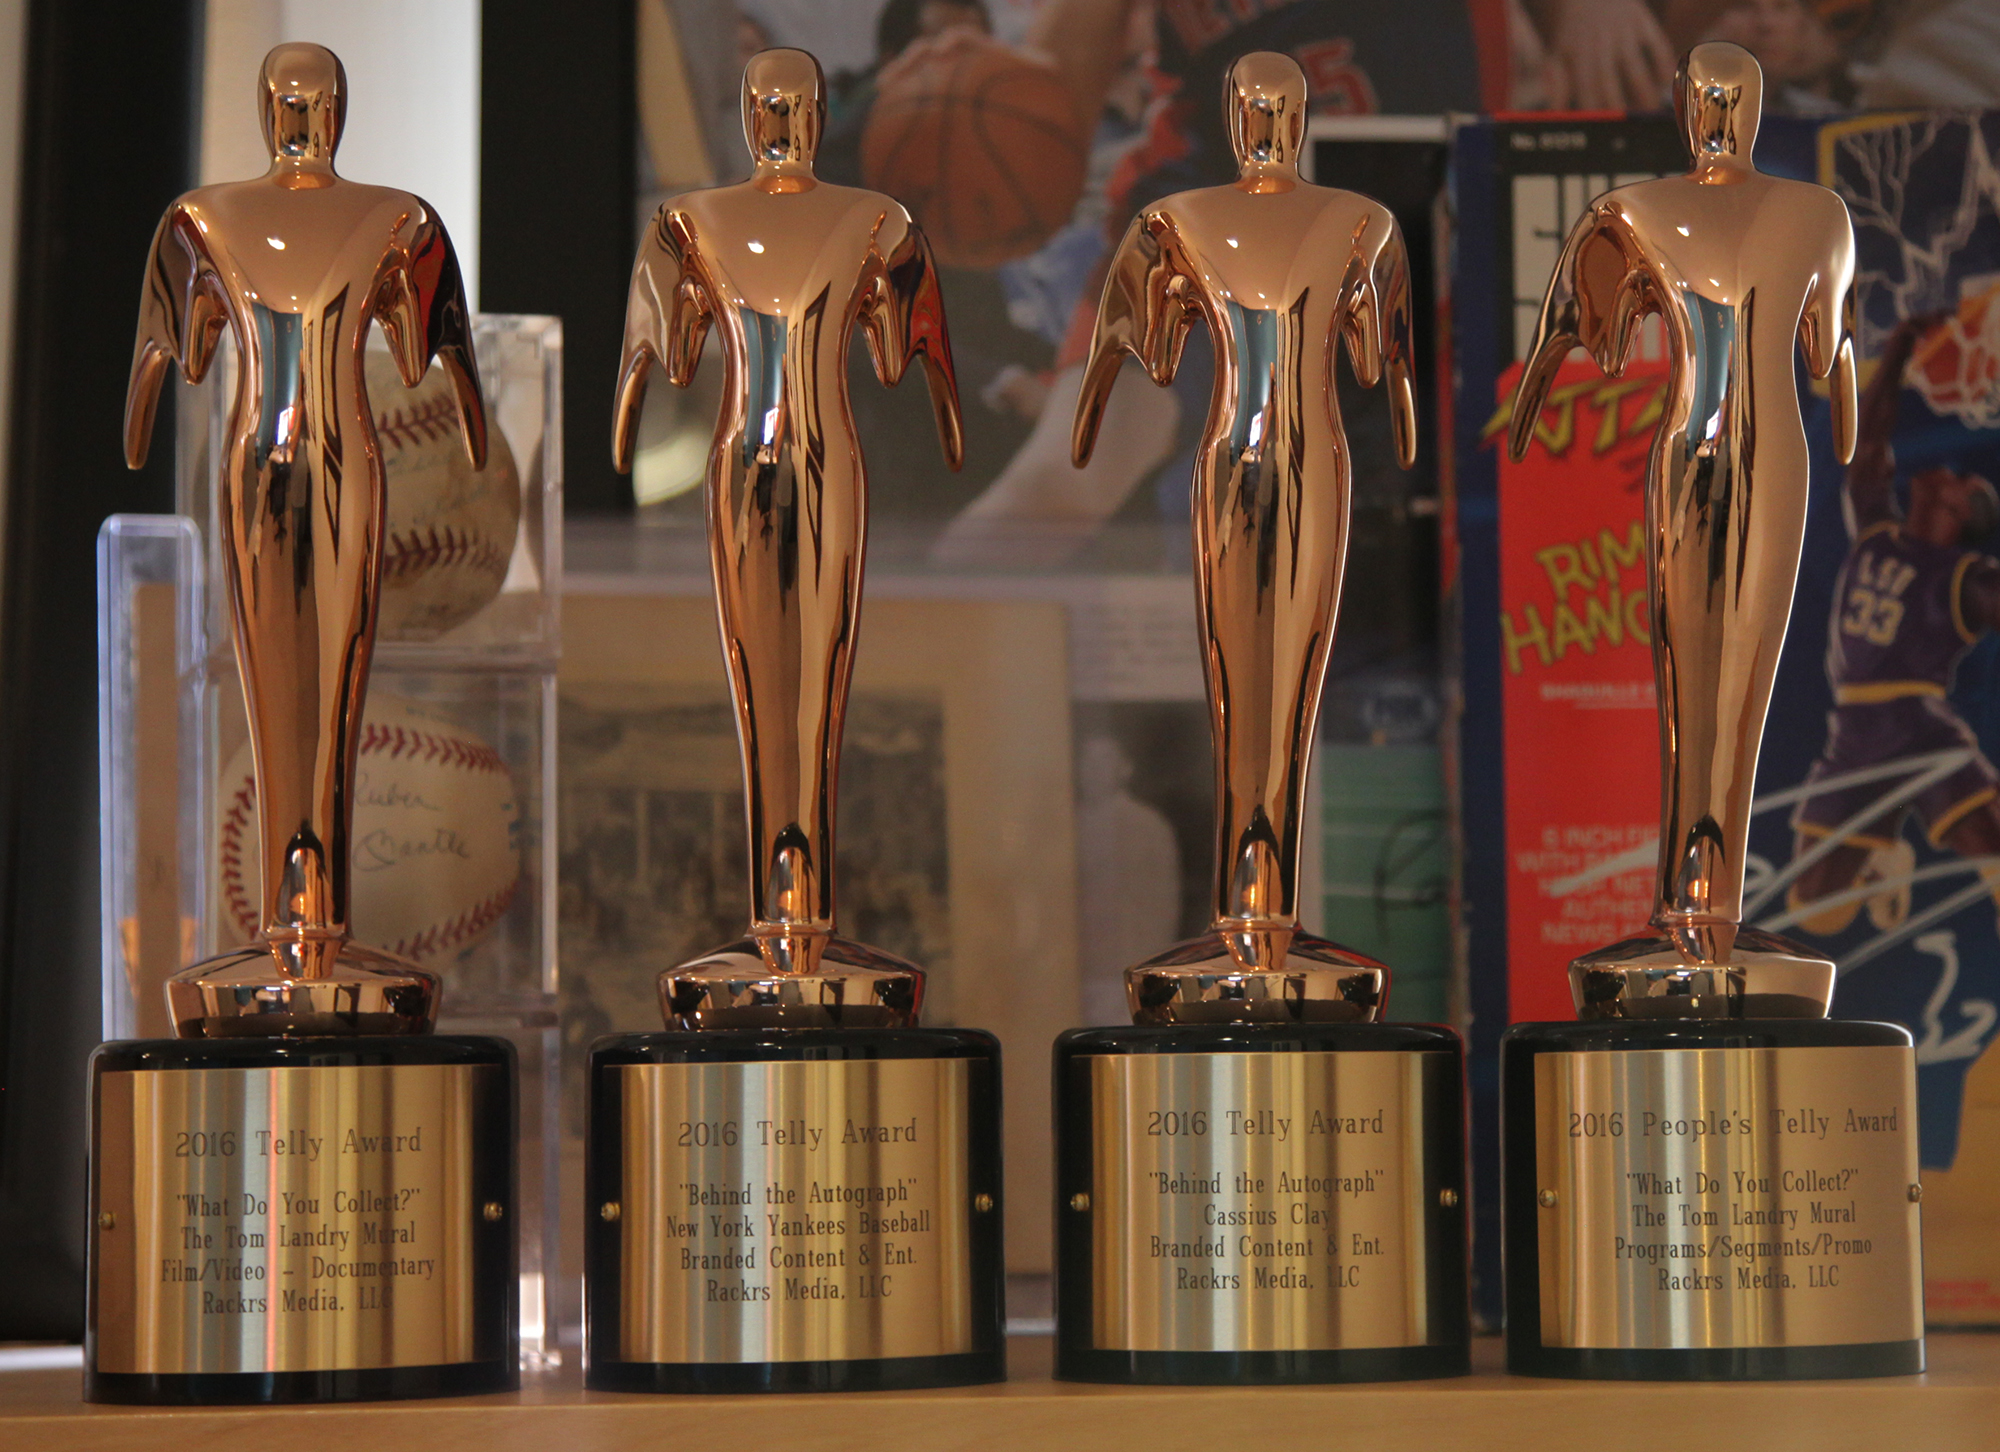 RACKRS MEDIA SELECTED A 4x TIME WINNER IN THE 37th ANNUAL TELLY AWARDS